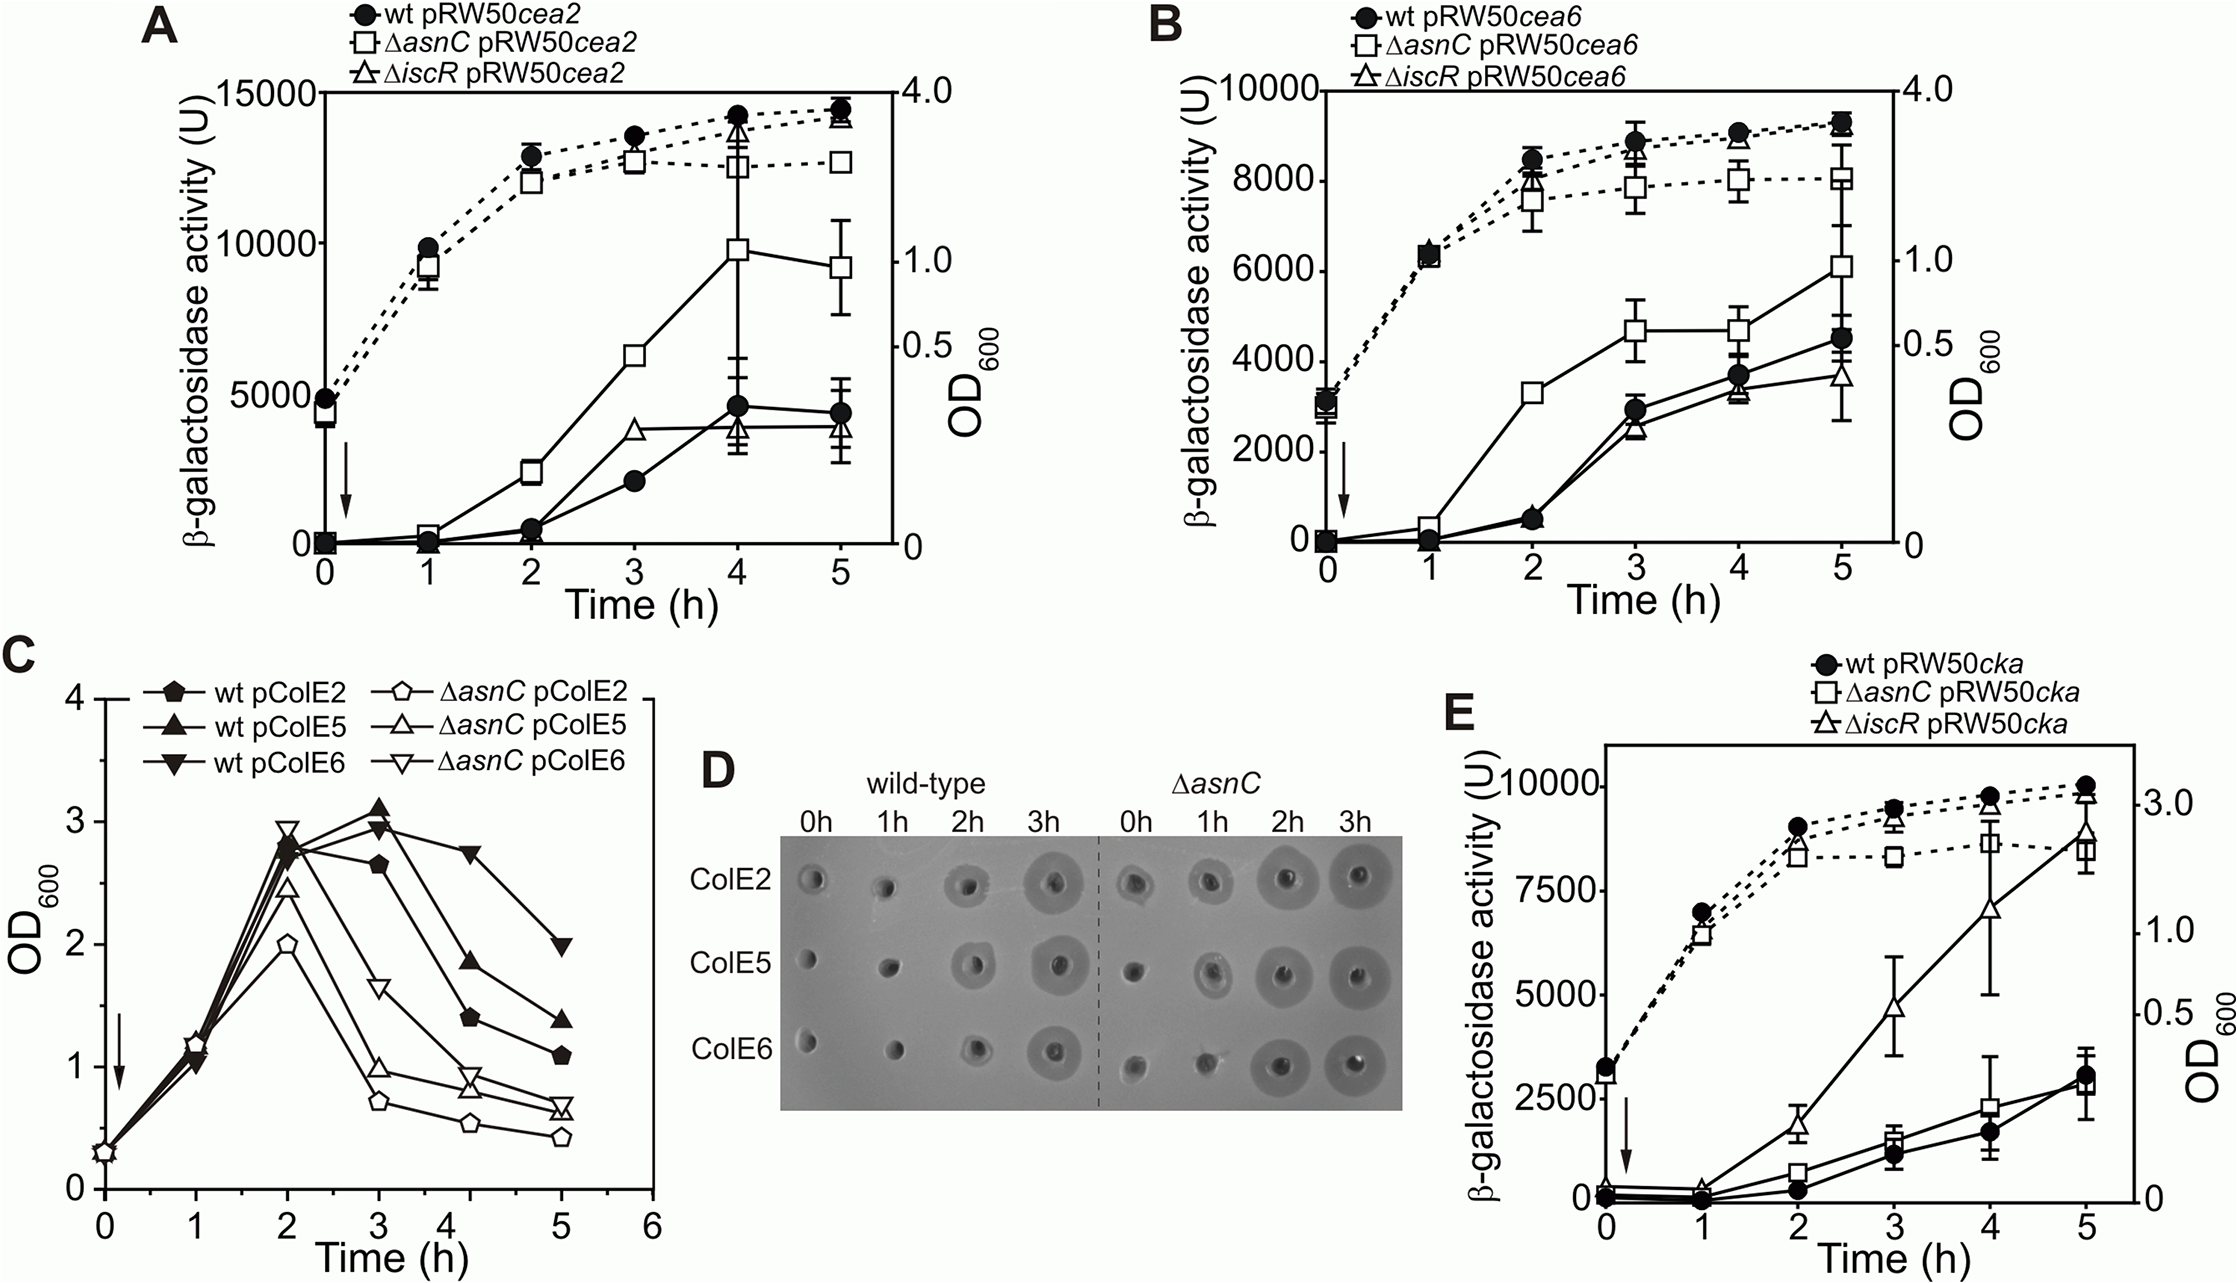 AsnC modulates the temporal induction of different DNA- and RNA-degrading colicins.